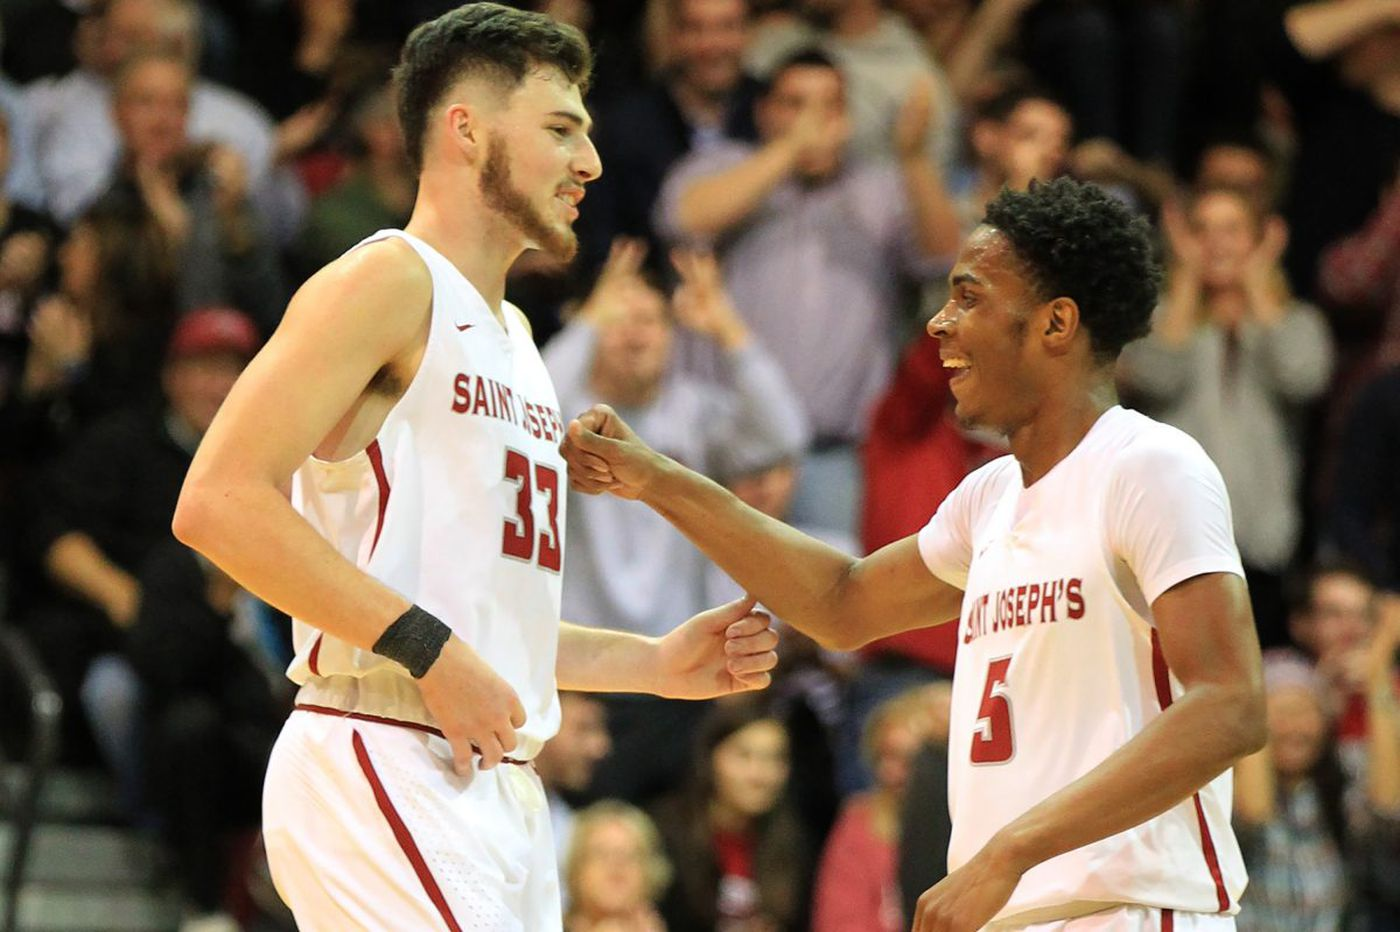 St. Joseph's Taylor Funk is A-10 rookie of the week